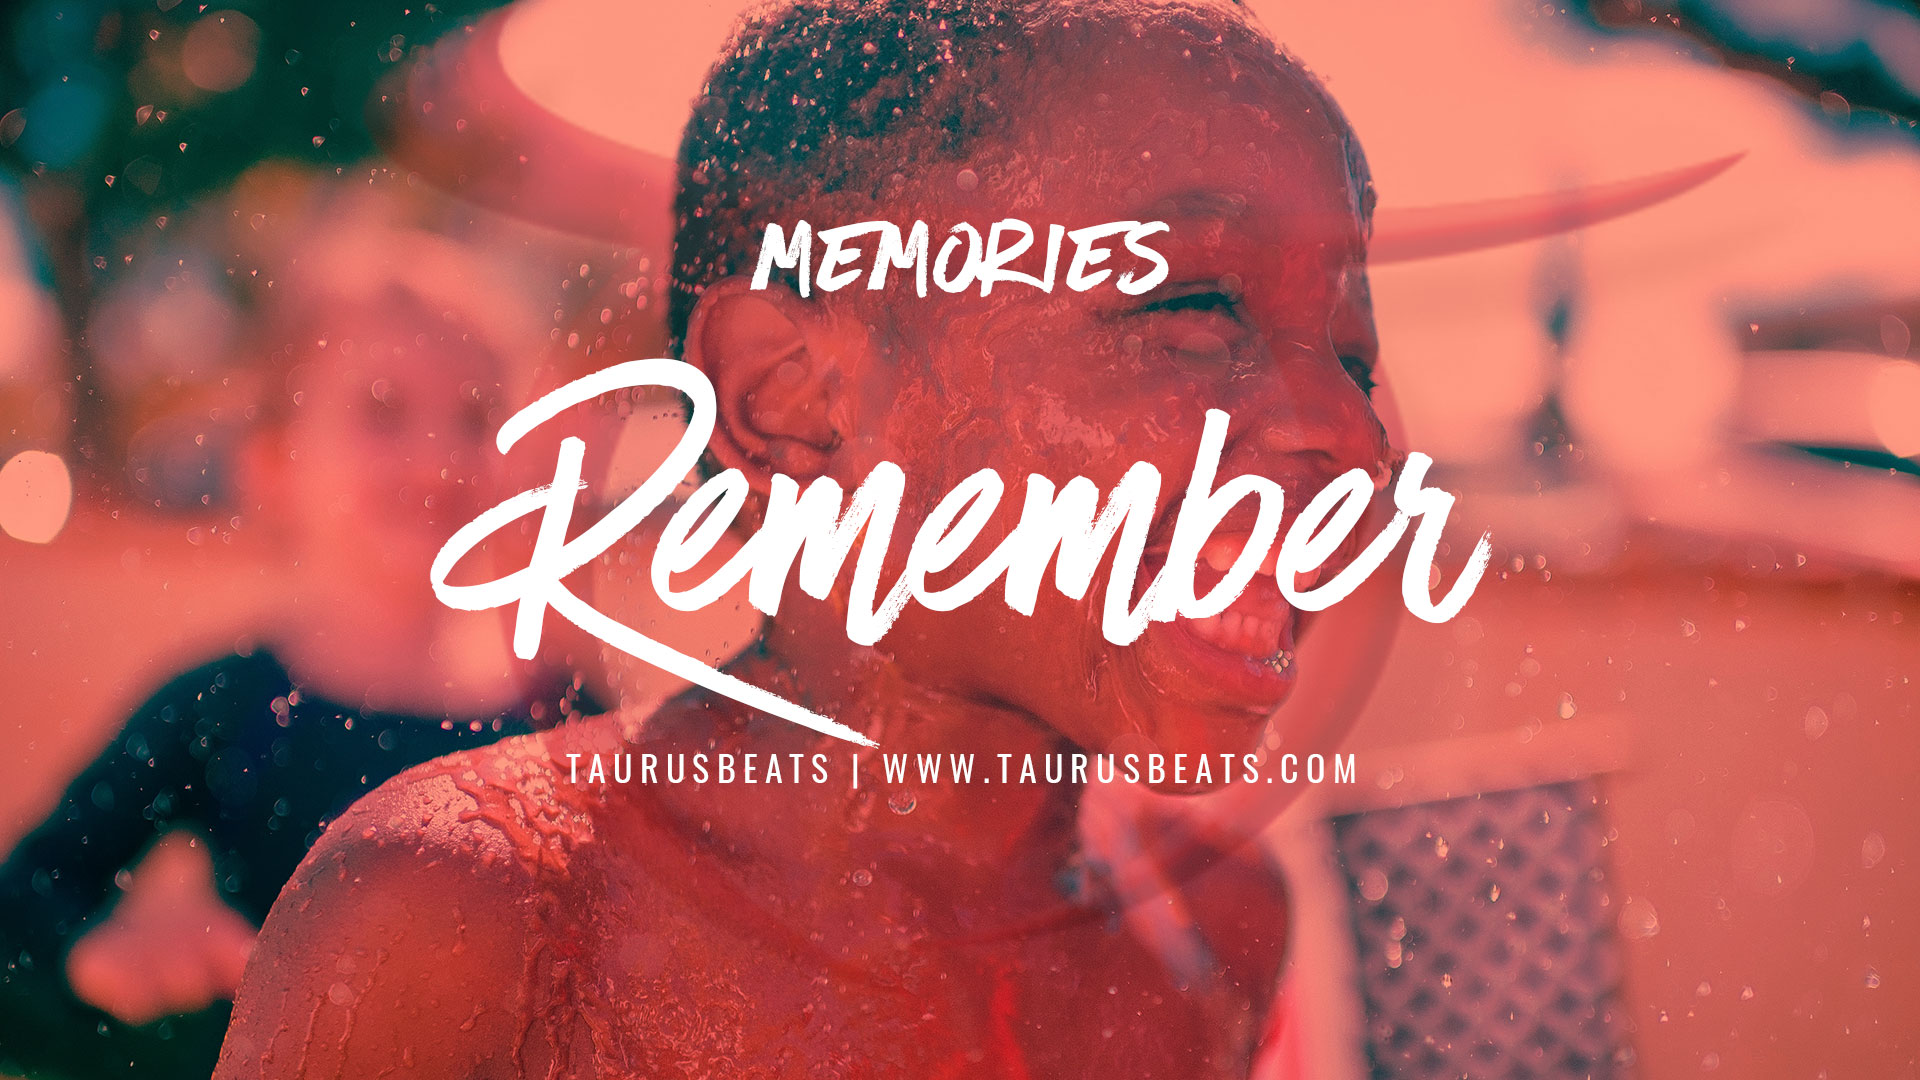 image for Remember